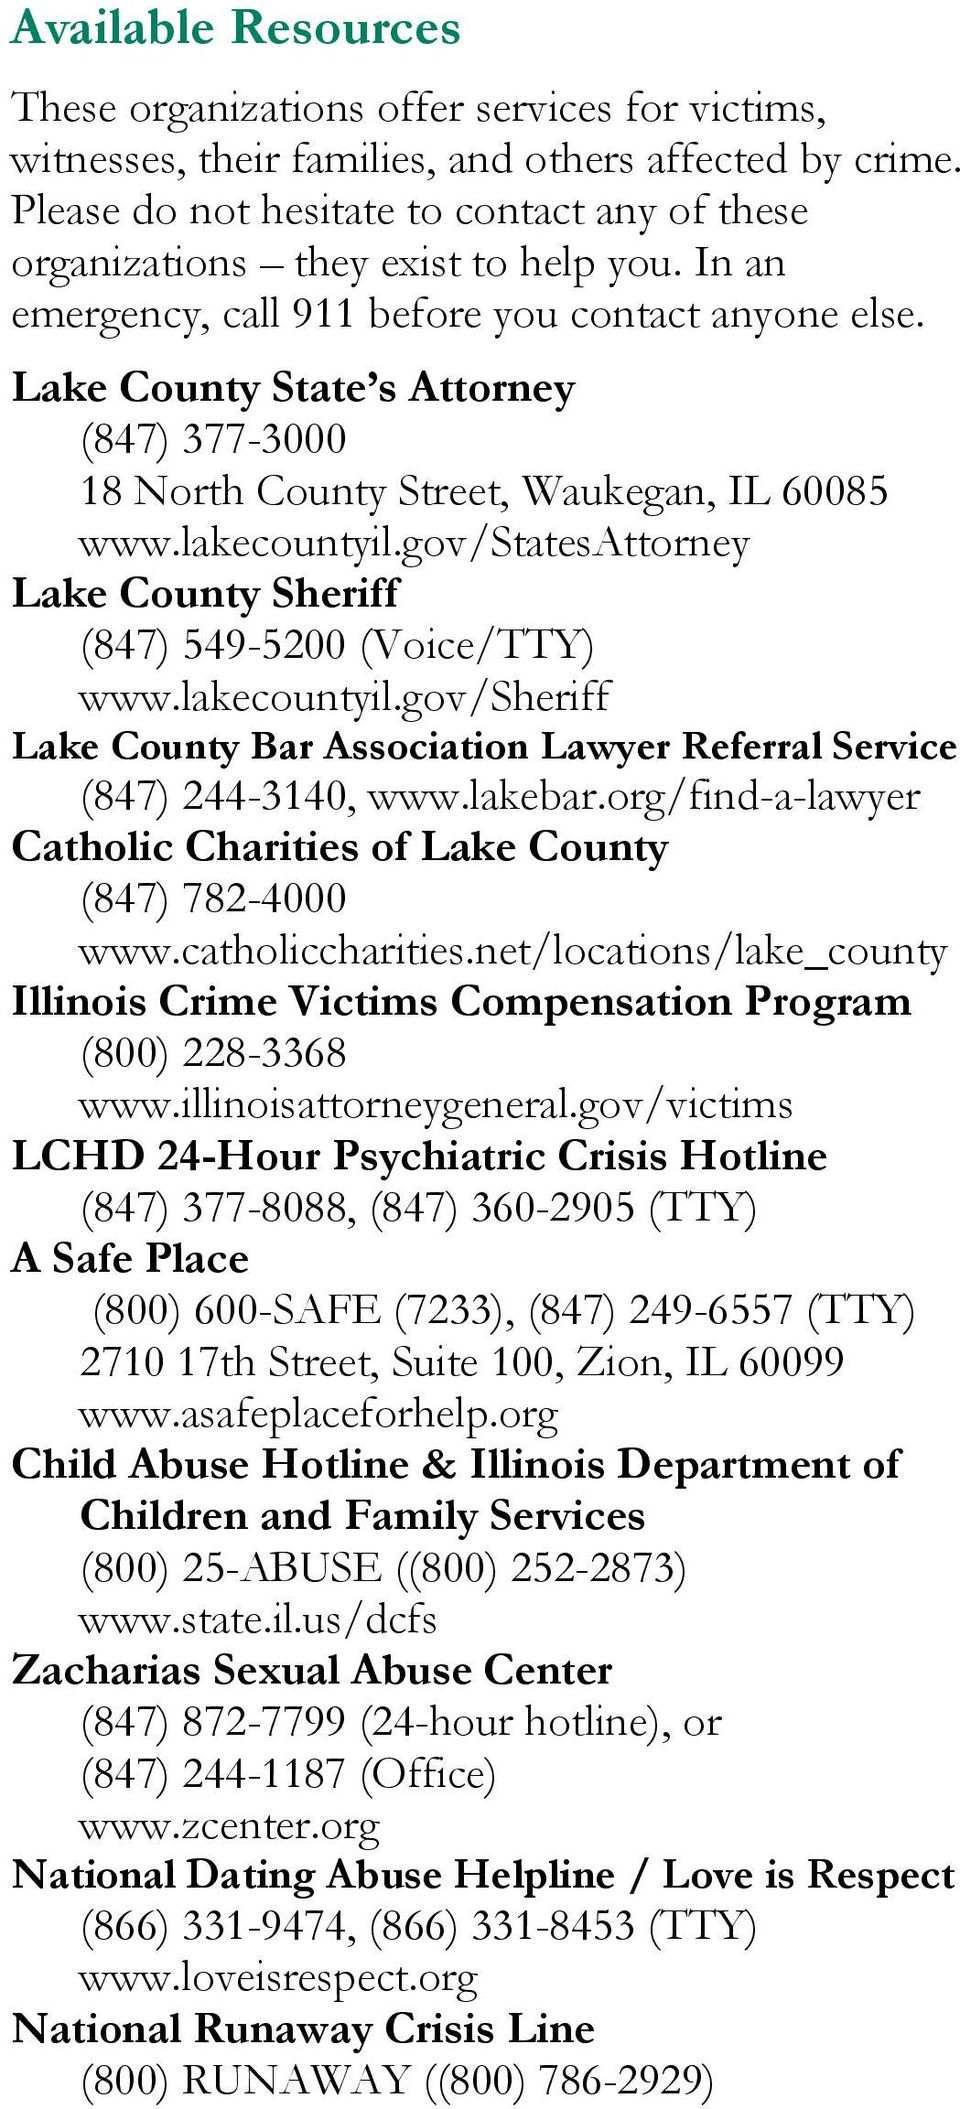 L (847) 377-3000 18 North County Street, Waukegan, IL 60085 www.lakecountyil.gov/statesattorney Lake County Sheriff (847) 549-5200 (Voice/TTY) www.lakecountyil.gov/sheriff Lake County Bar Association Lawyer Referral Service (847) 244-3140, www.